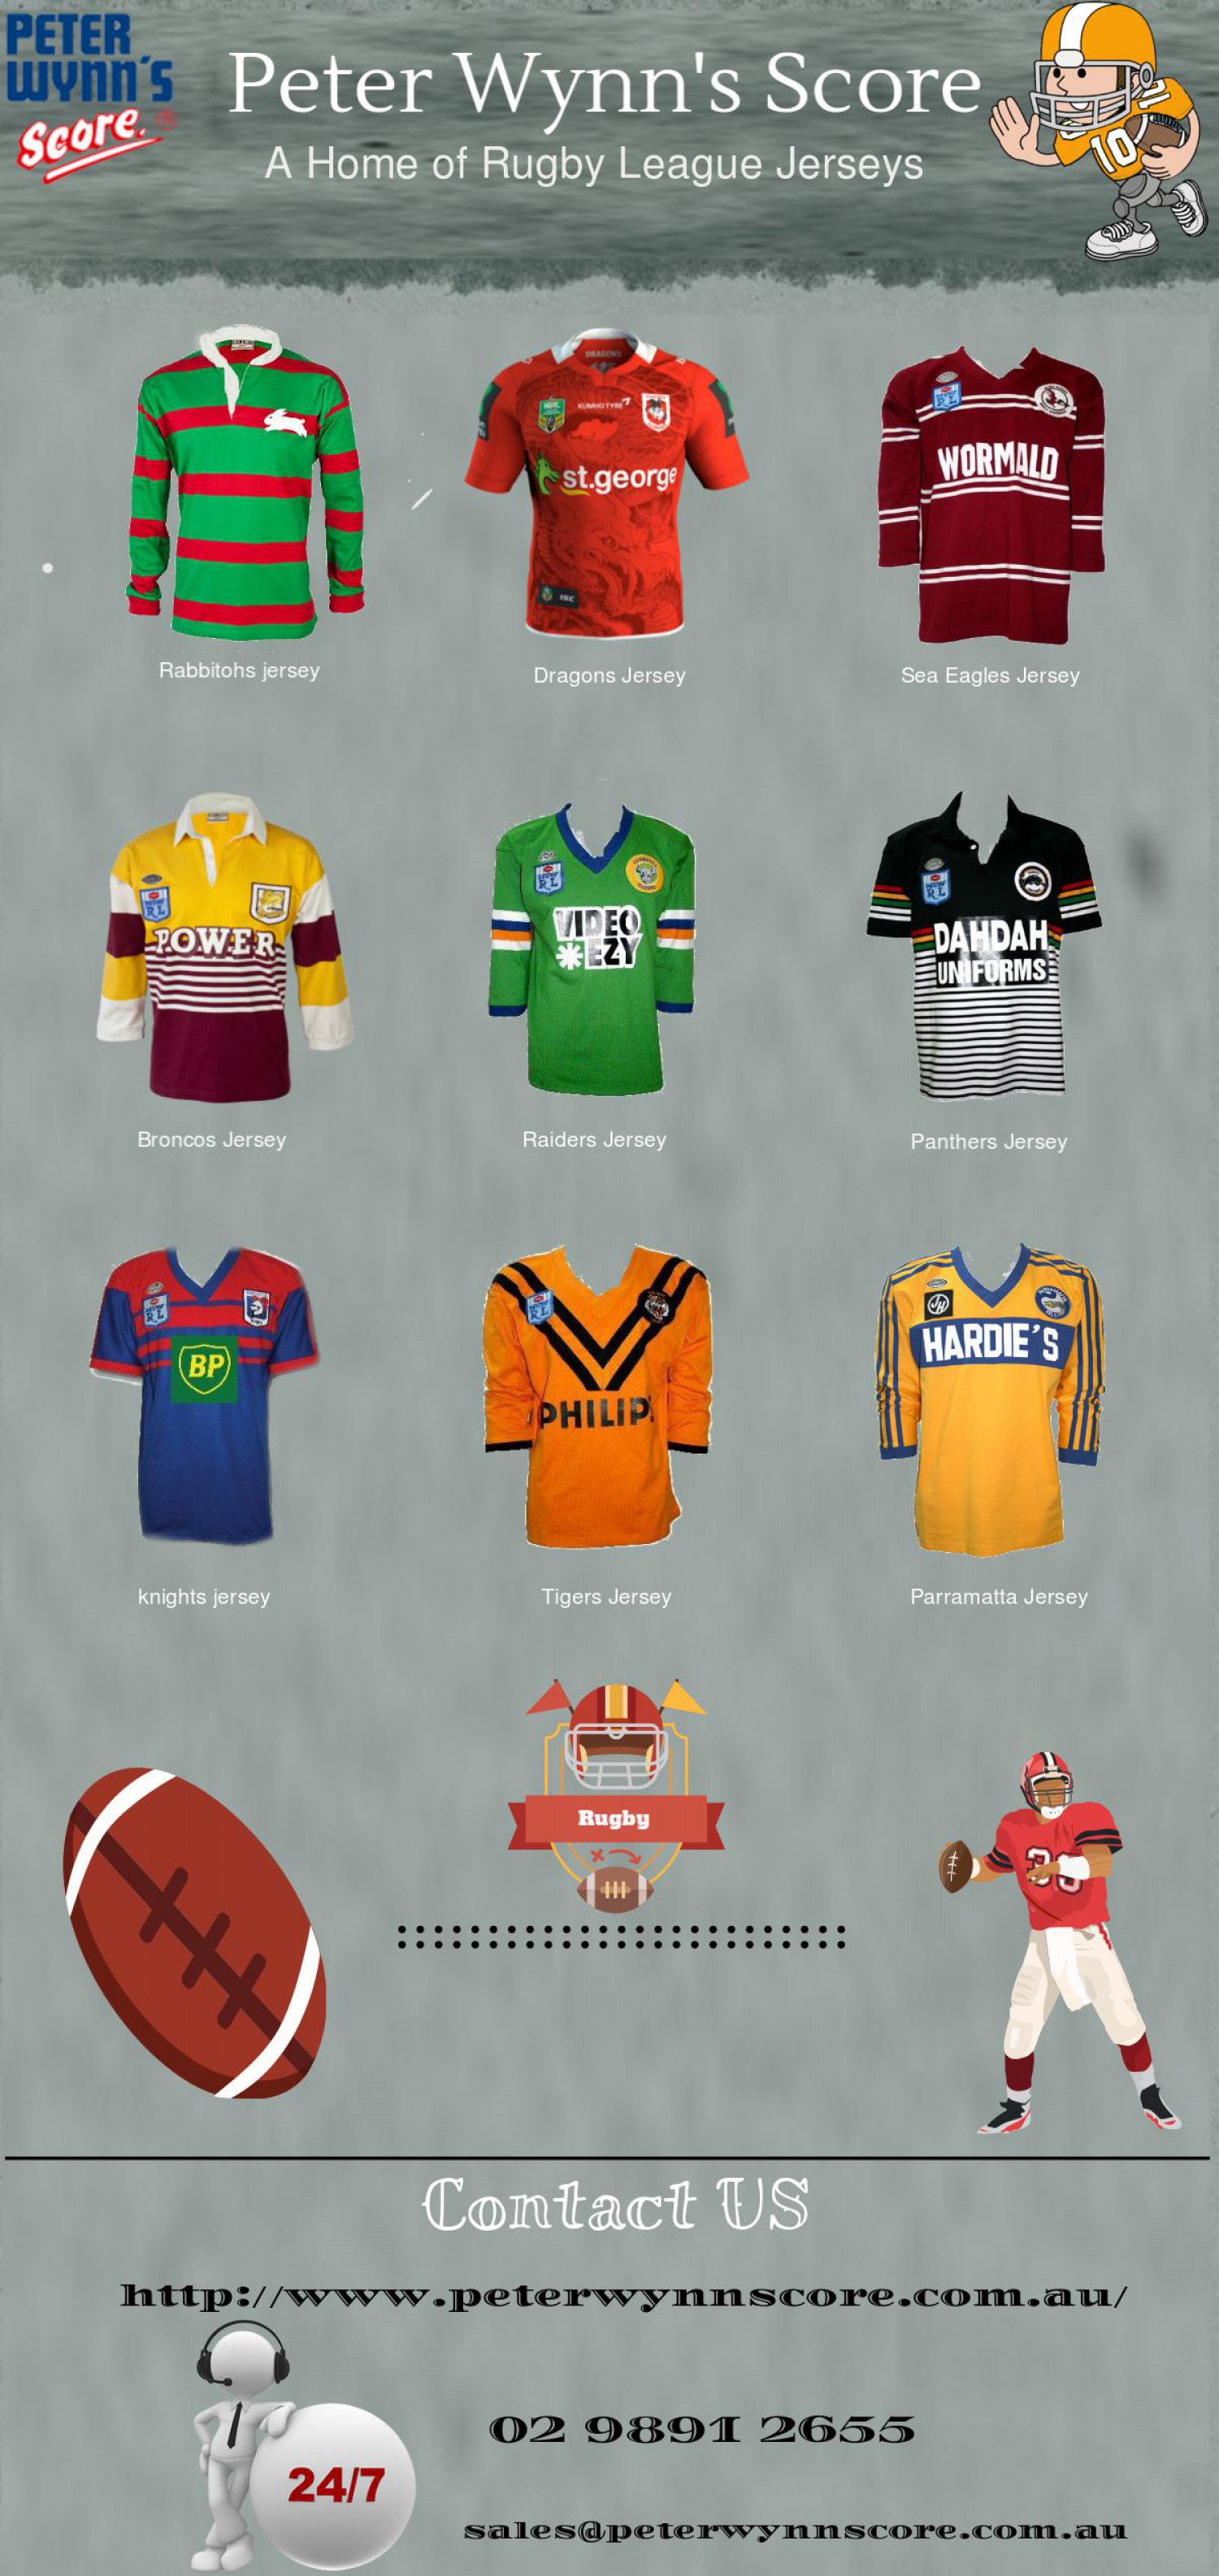 Order Your Jerseys Online With Peter Wynn's Score | Visual.ly